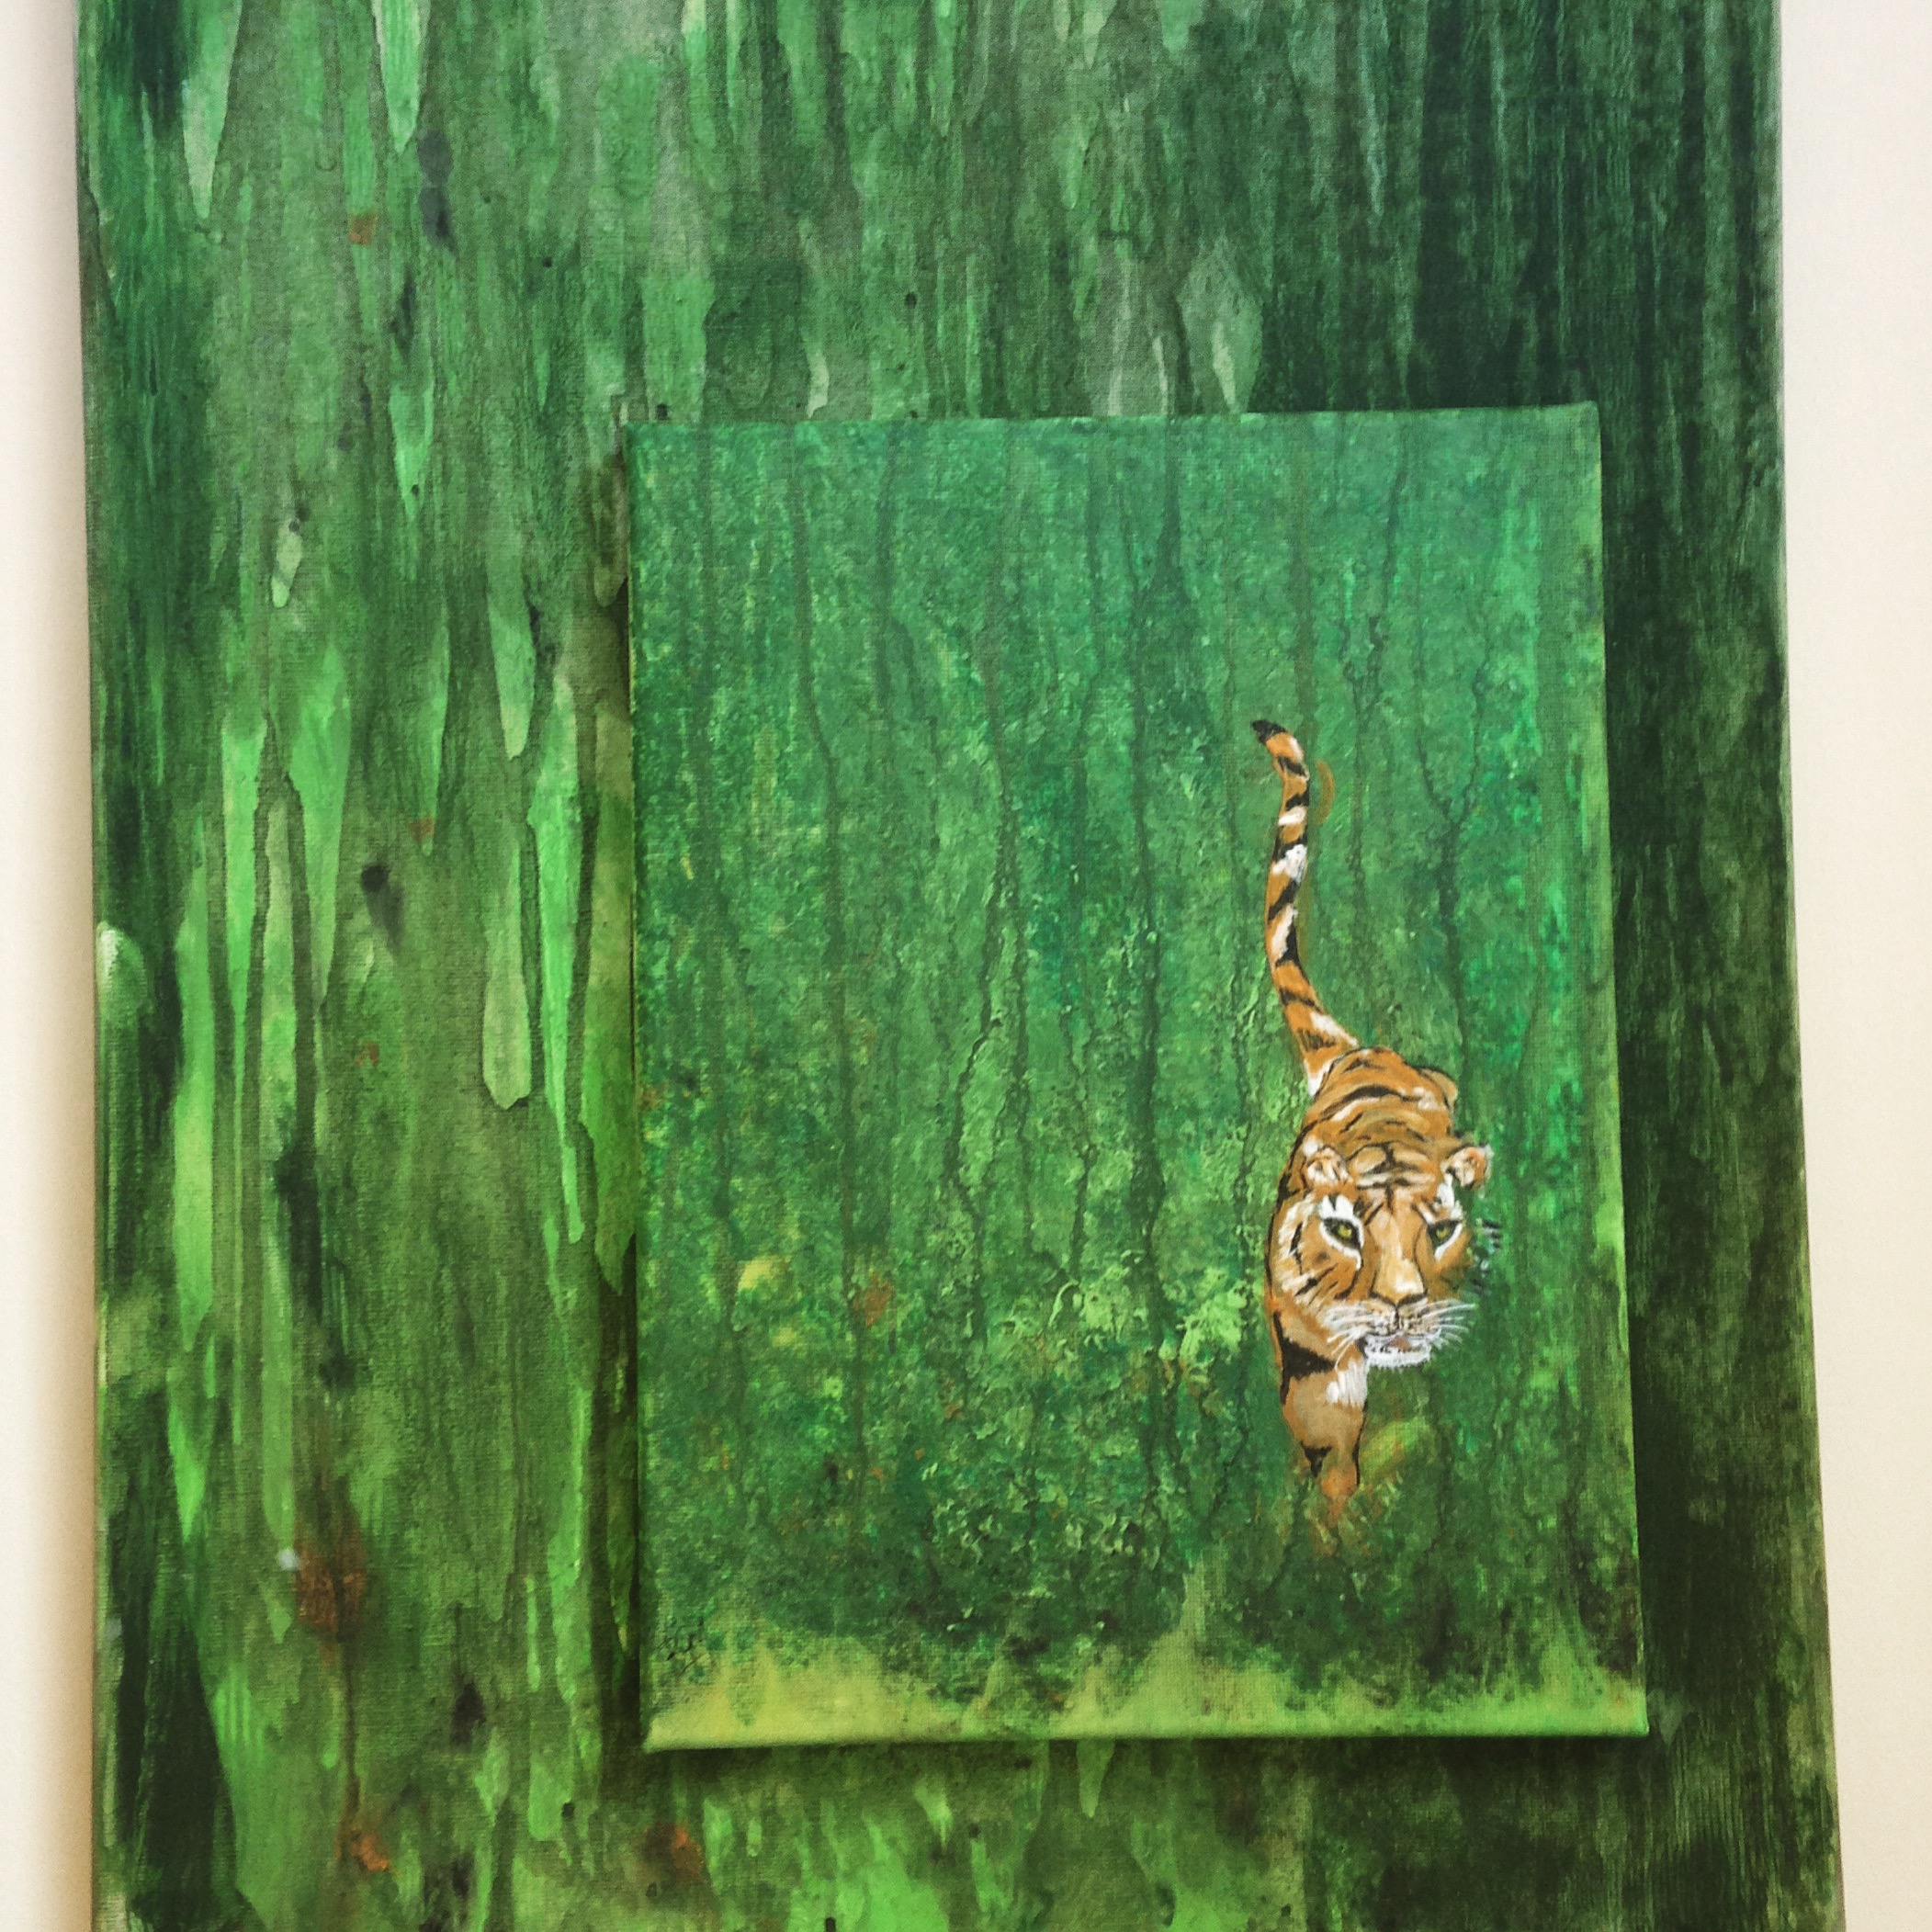 Tiger in the Jungle - For Sale